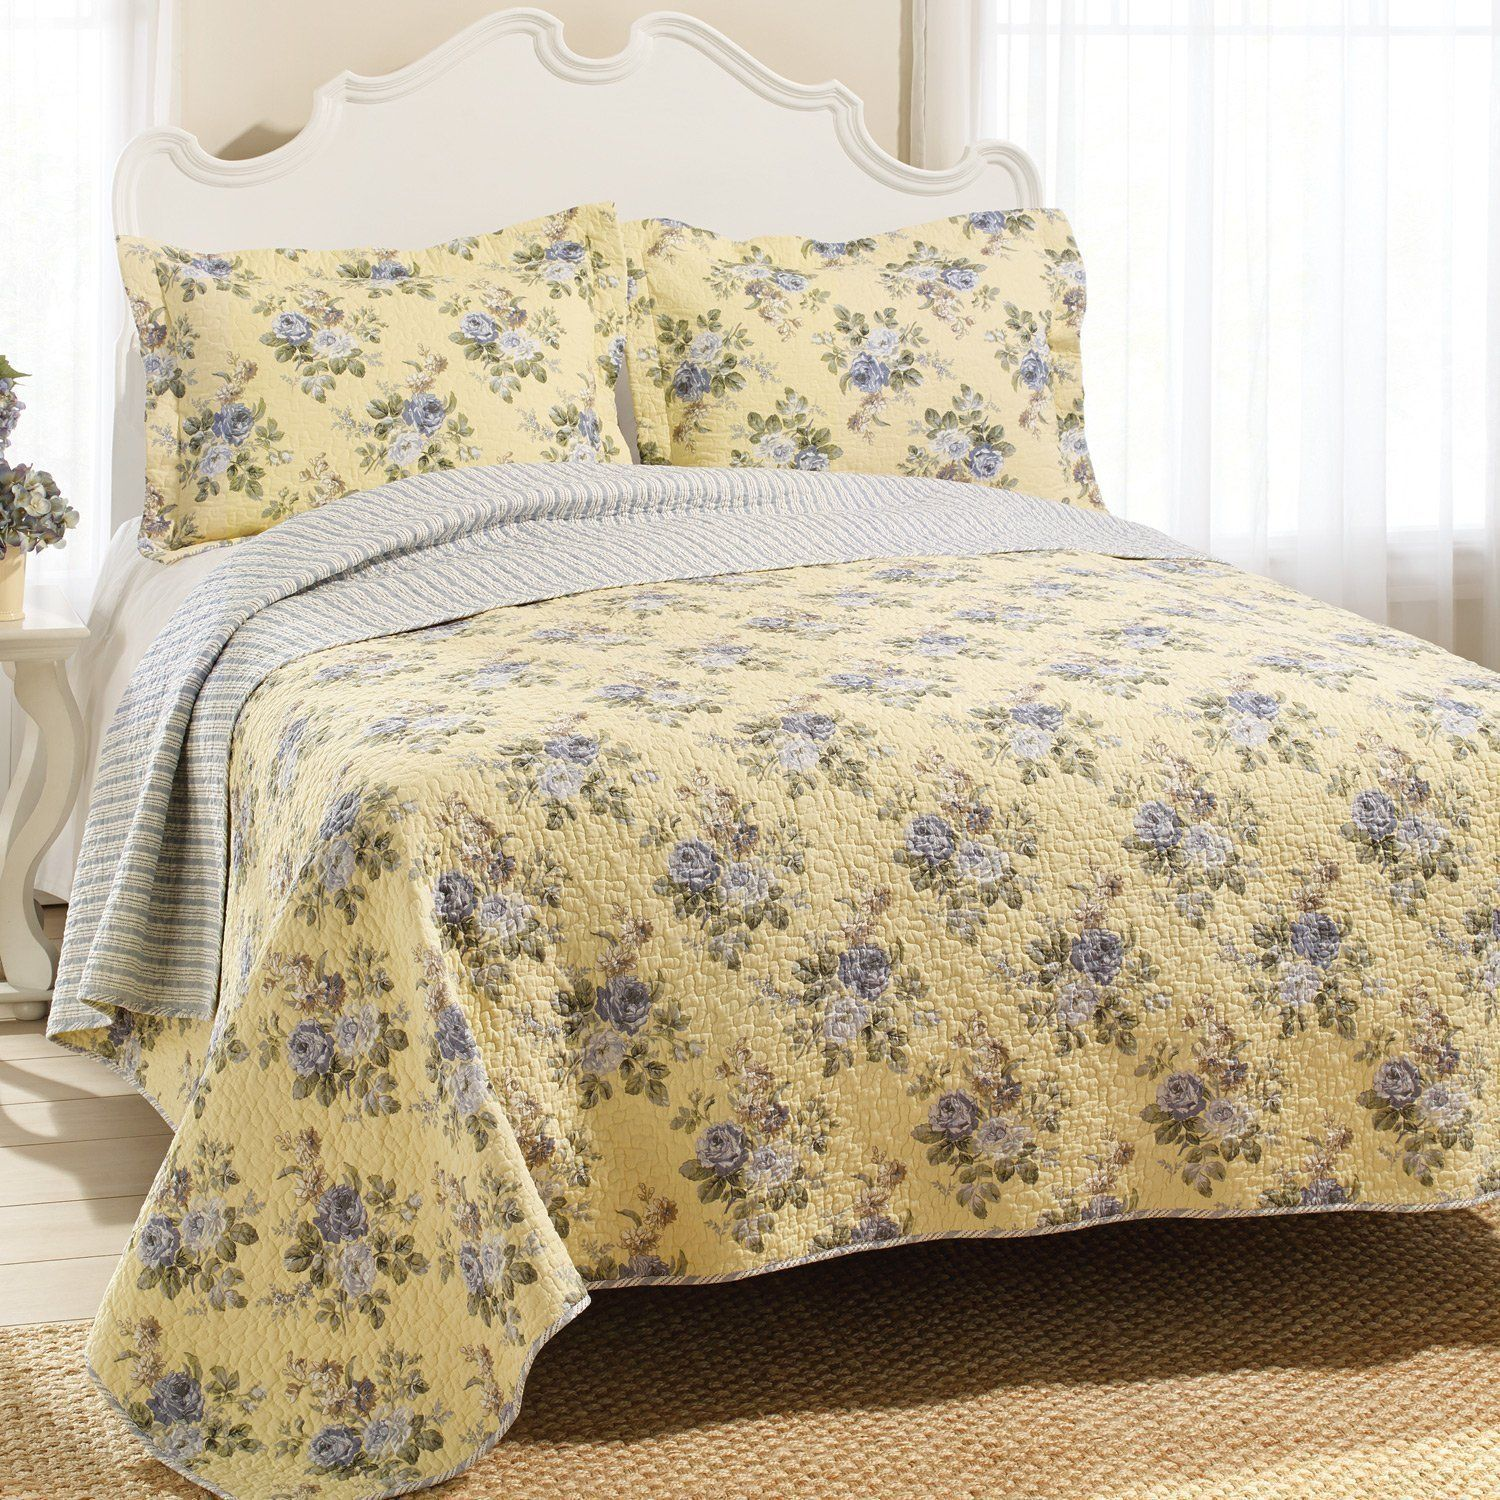 laura ashley quilt linley yellow king | laura ashley quilts, laura